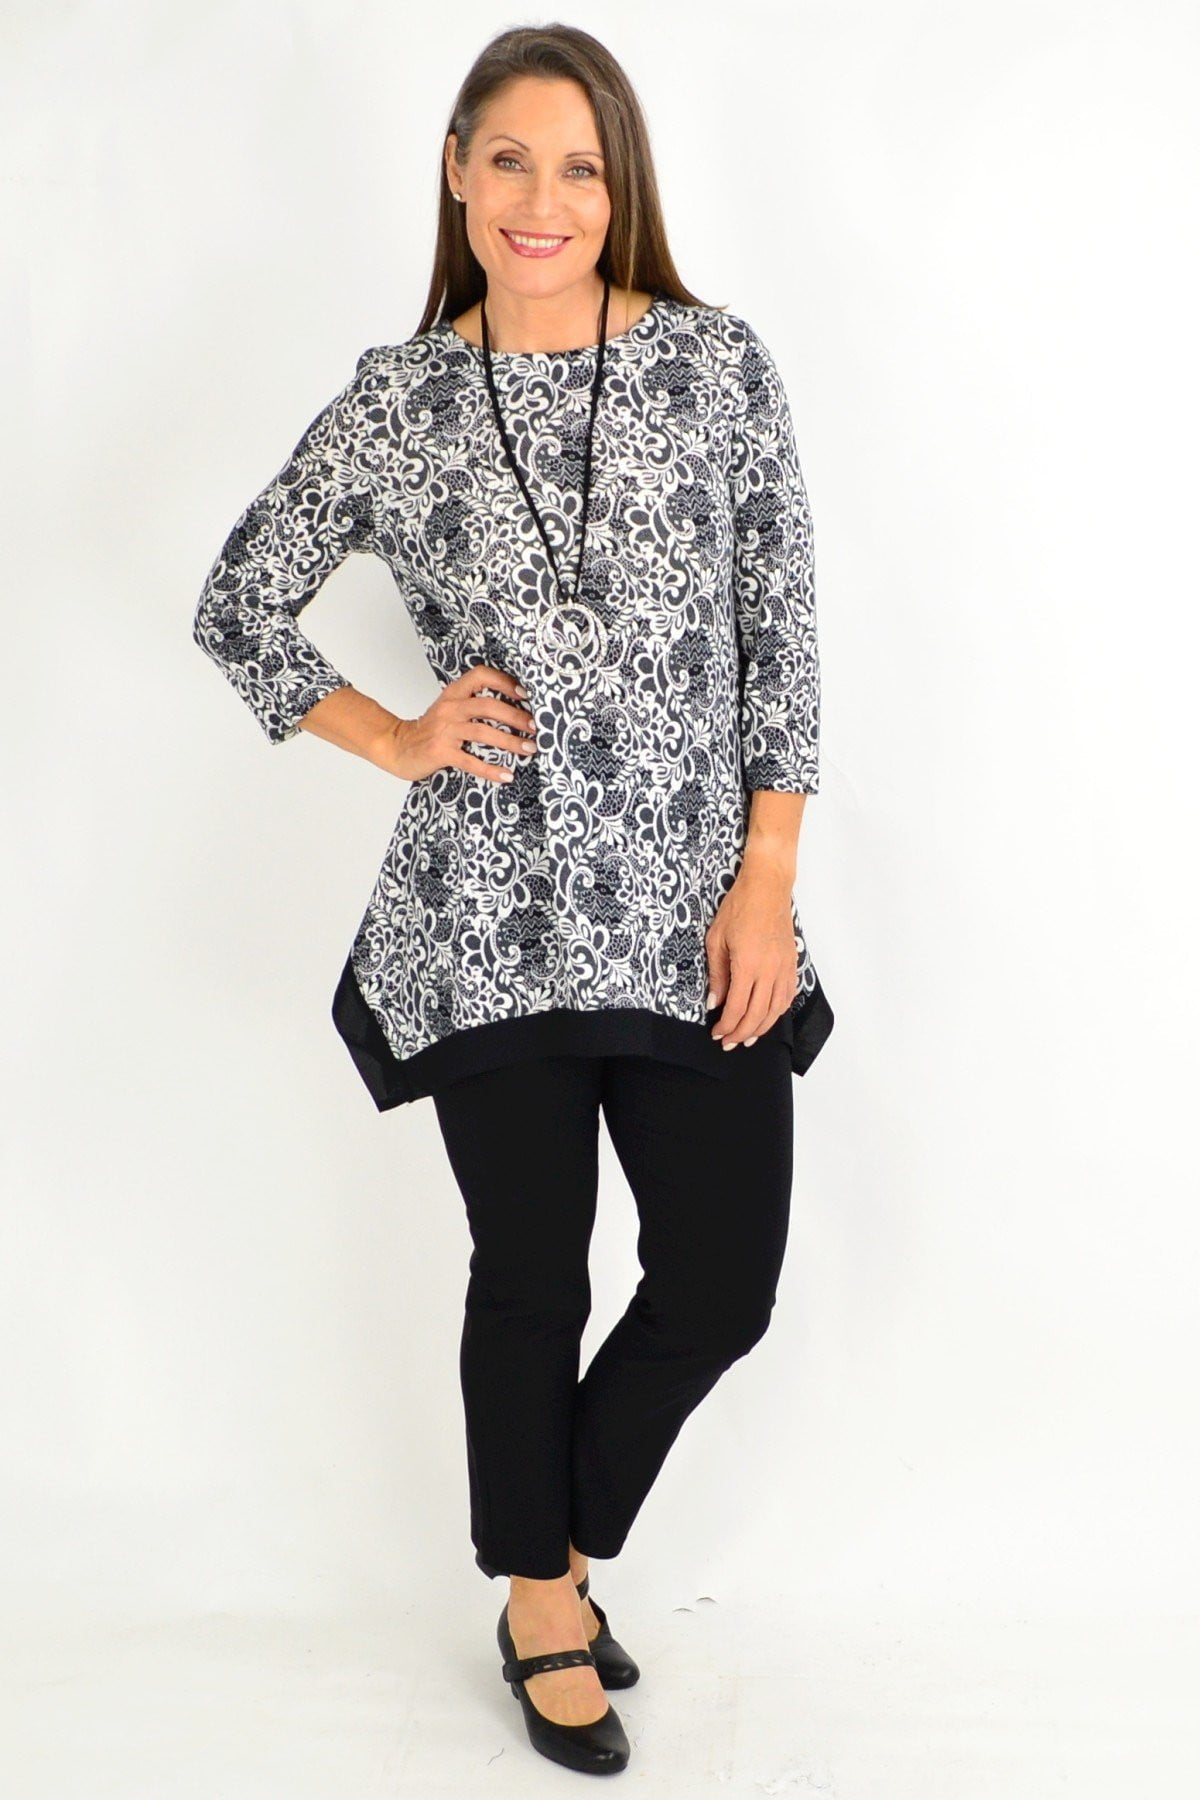 Victorian Fleece Tunic Top | I Love Tunics | Tunic Tops | Tunic | Tunic Dresses  | womens clothing online